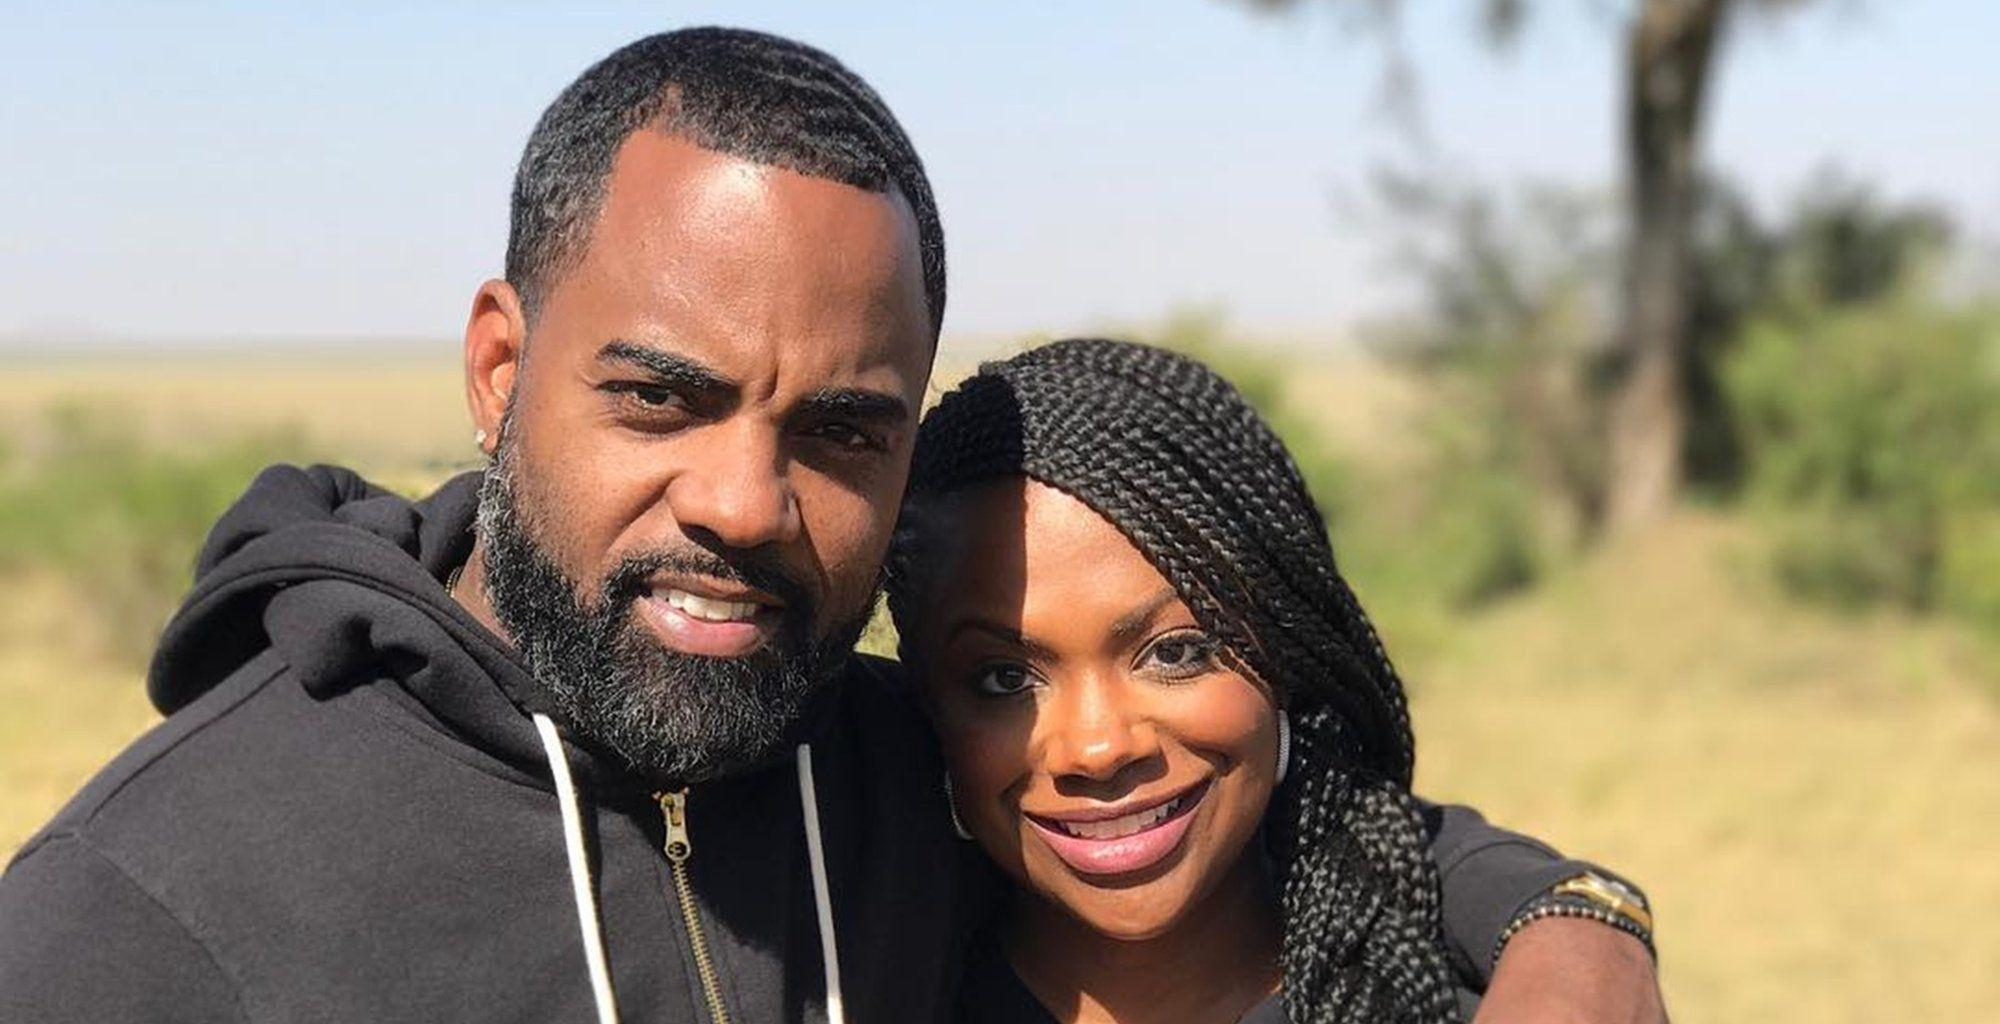 Kandi Burruss' Husband, Todd Tucker Joins Her Rehearsal - See Him Stretching With The Dancers And Check Out The Reason For Which Fans Are Laughing